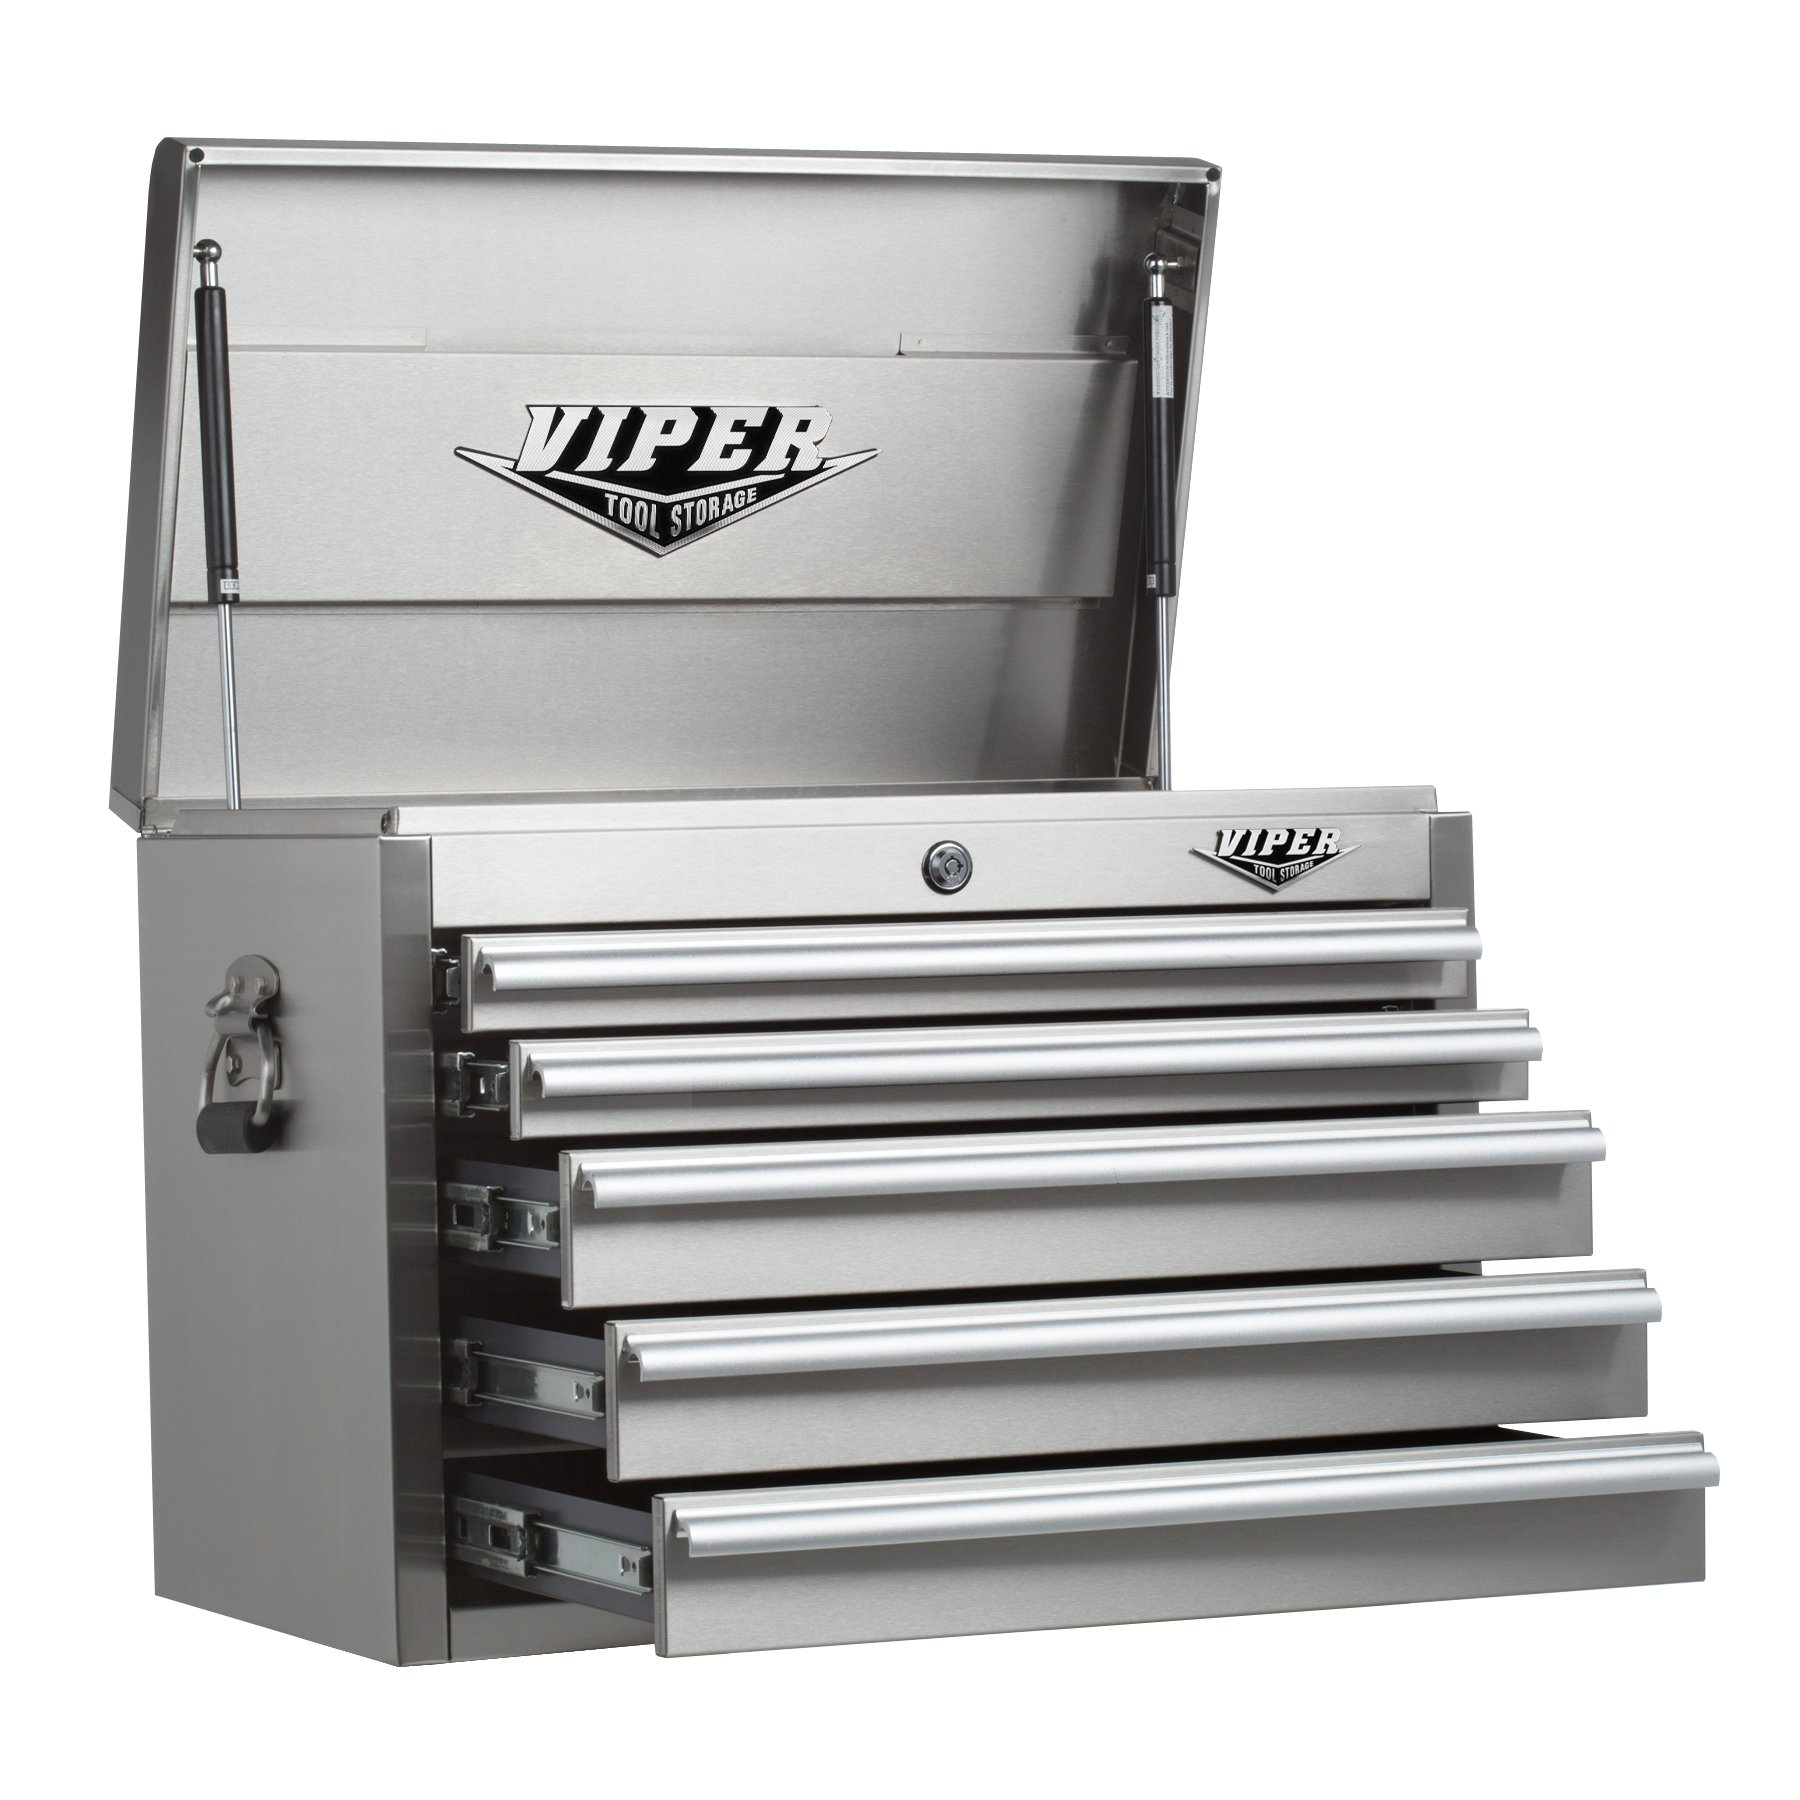 Viper Tool Storage V2605SSC 26-Inch 5-Drawer 304 Stainless Steel Top Chest